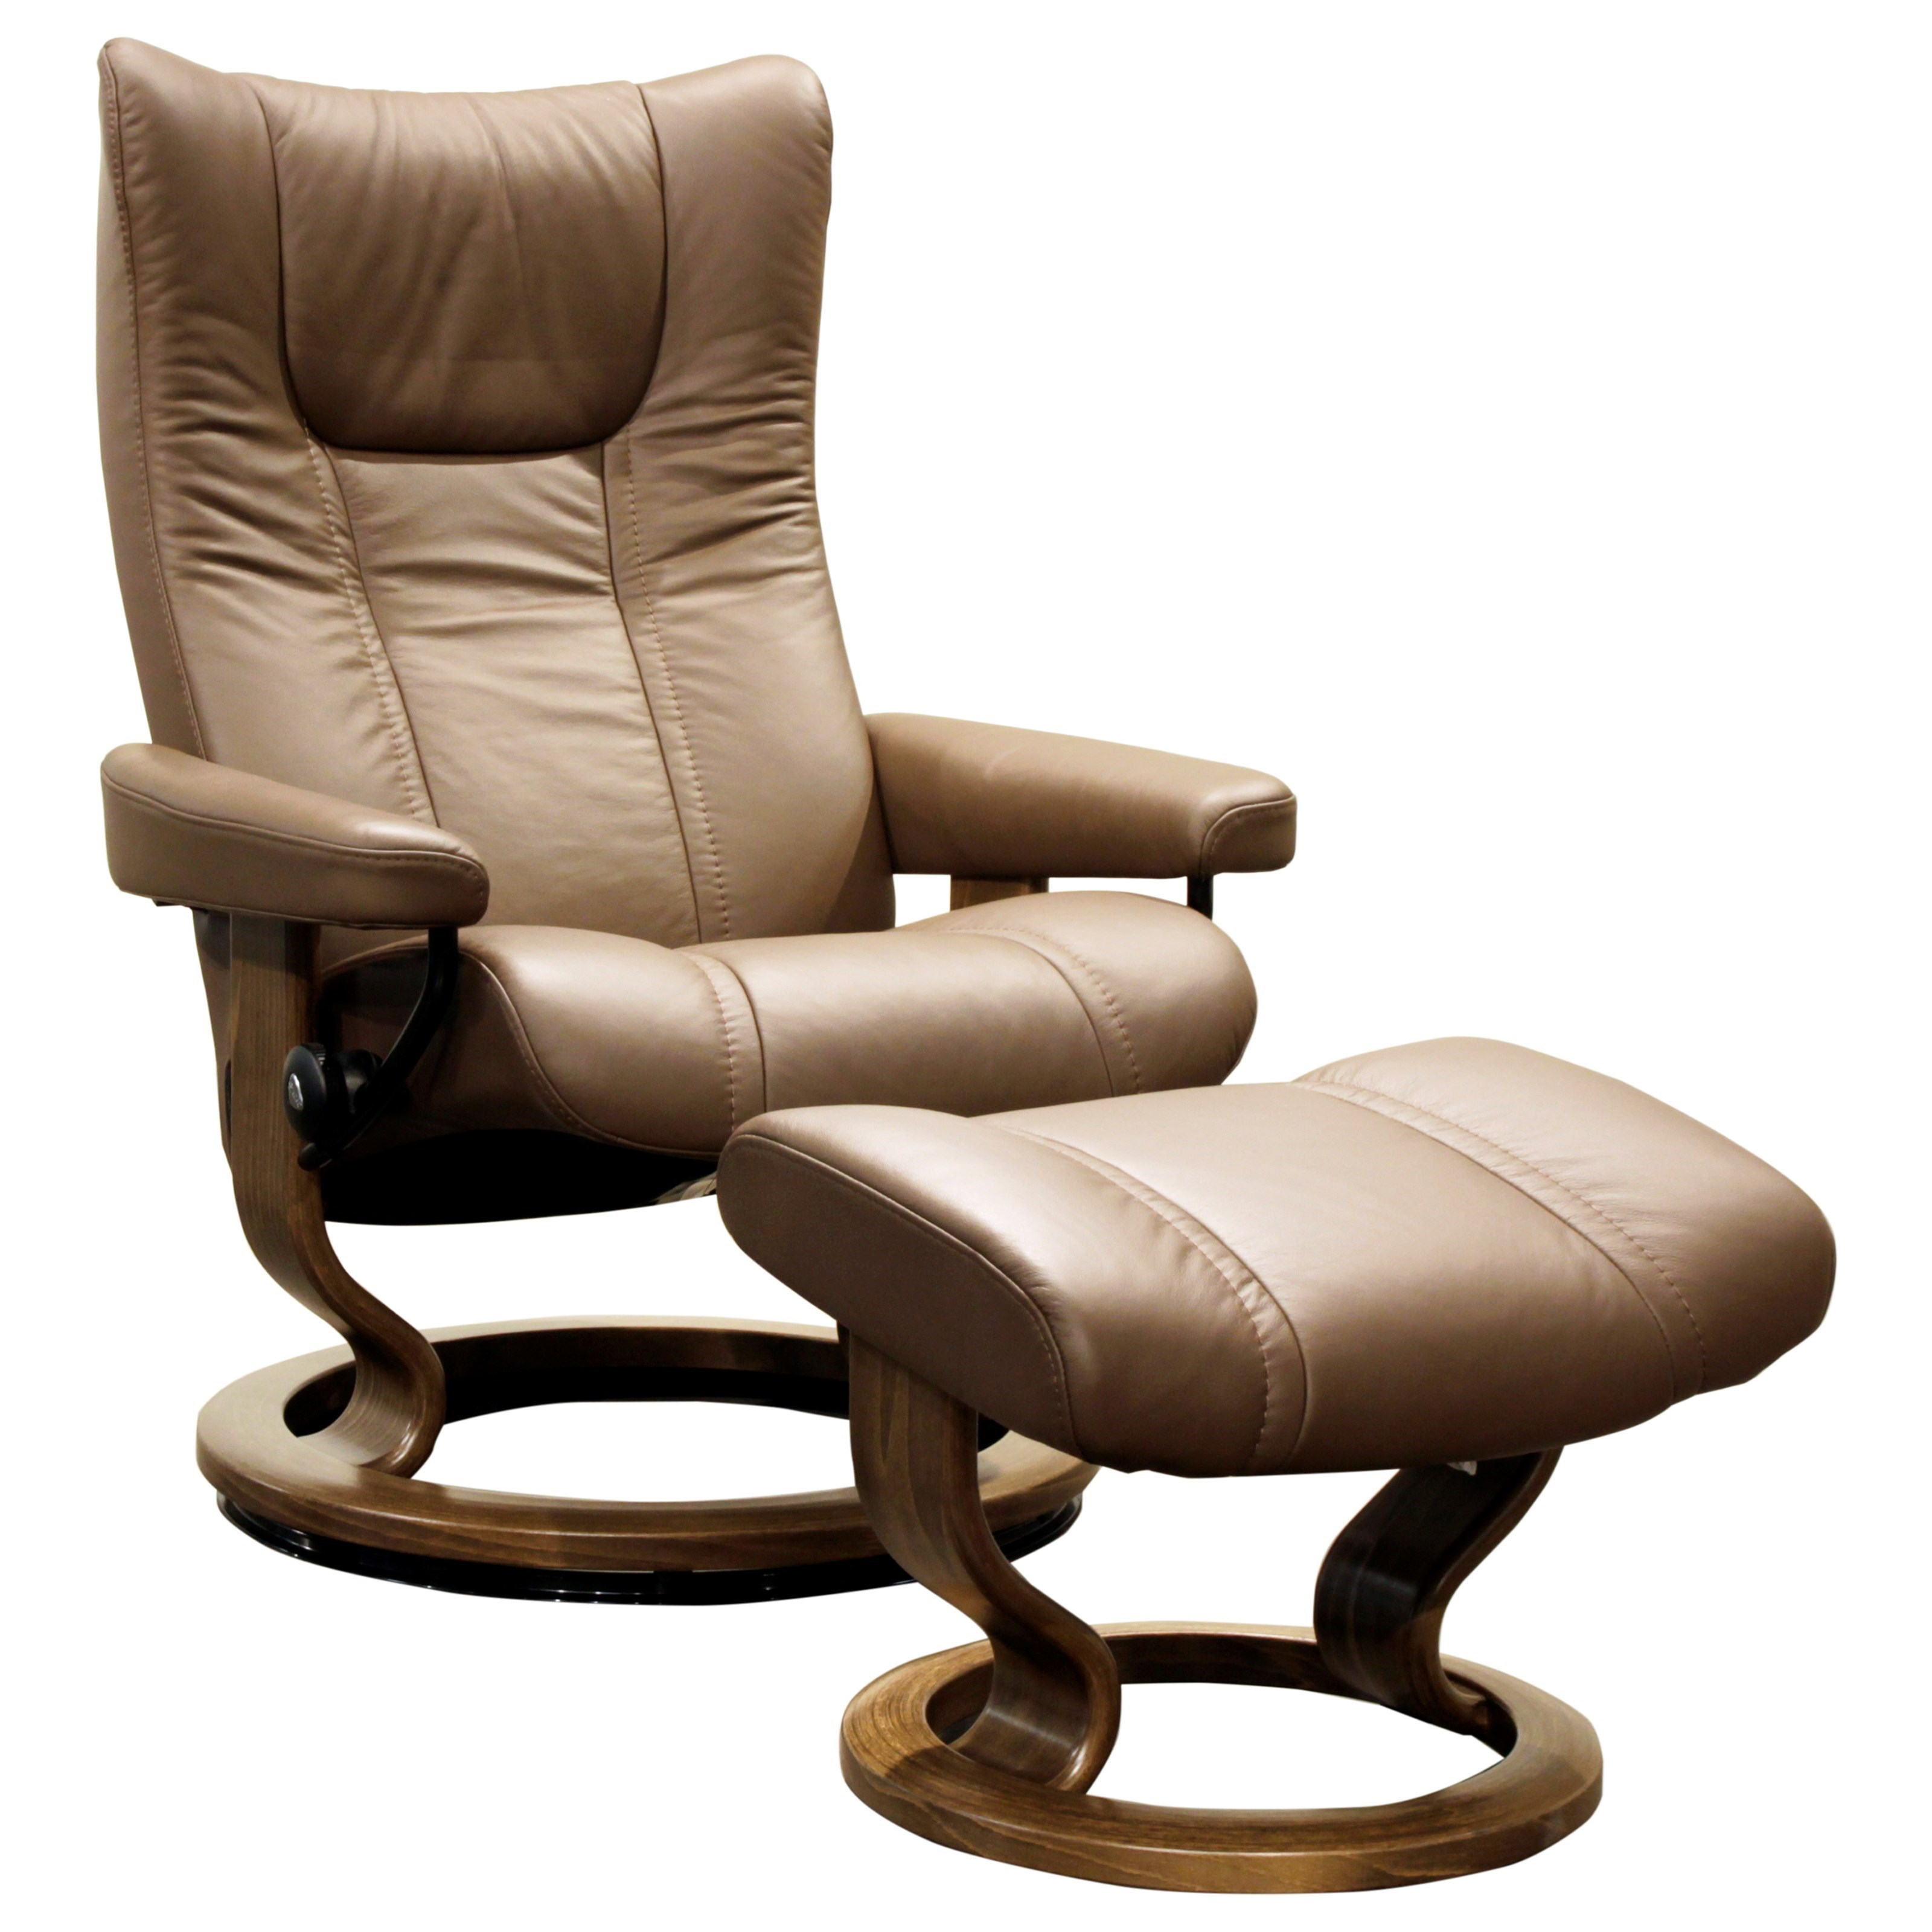 Wing Medium Chair & Ottoman with Classic Base by Stressless at Jordan's Home Furnishings